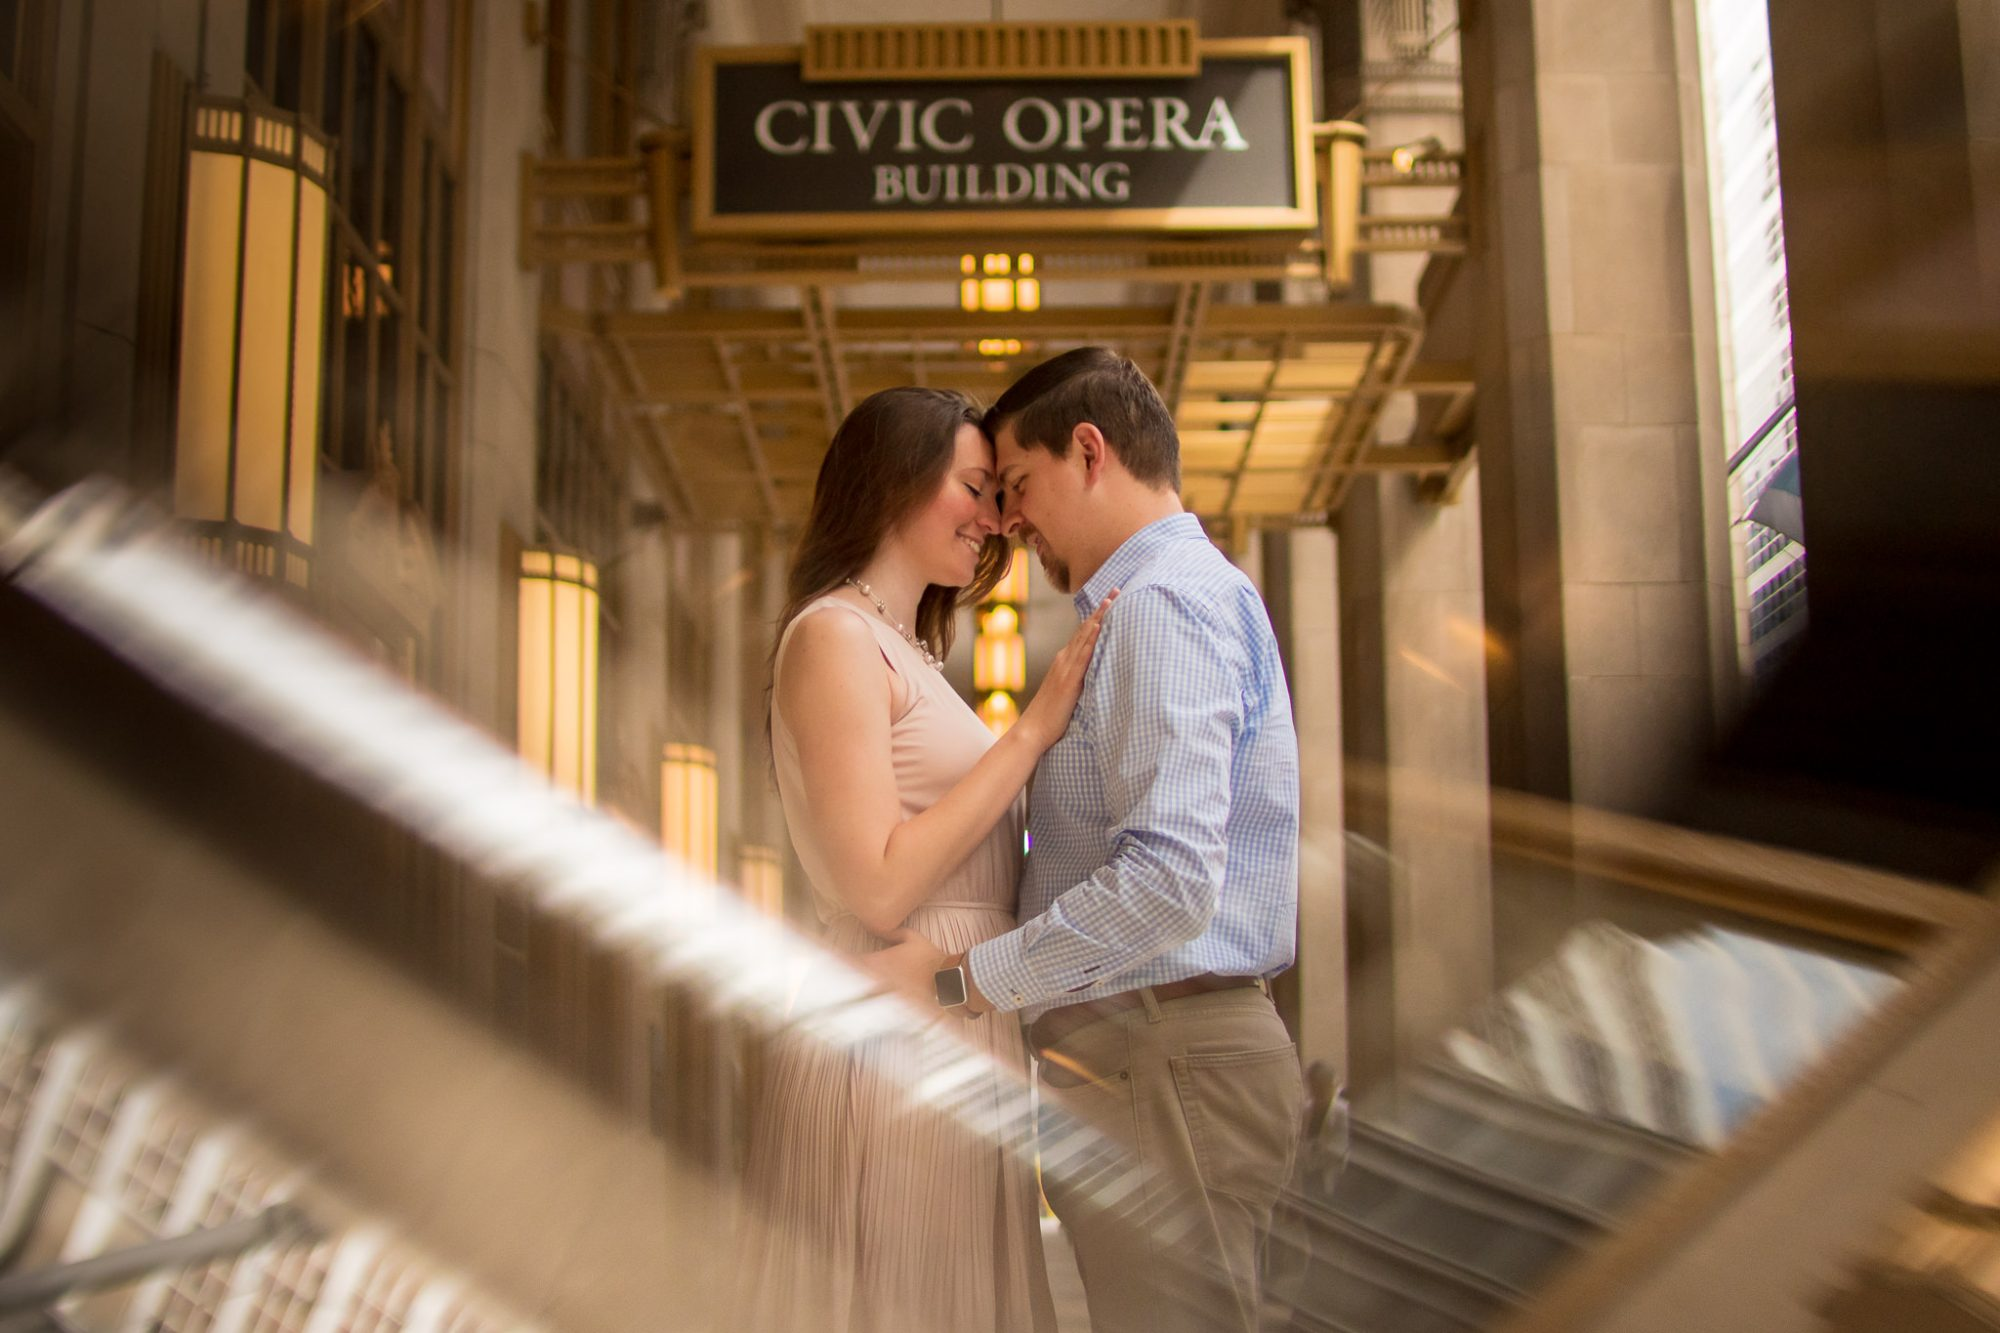 Engaged couple close together at the Civic Opera Building in Chicago